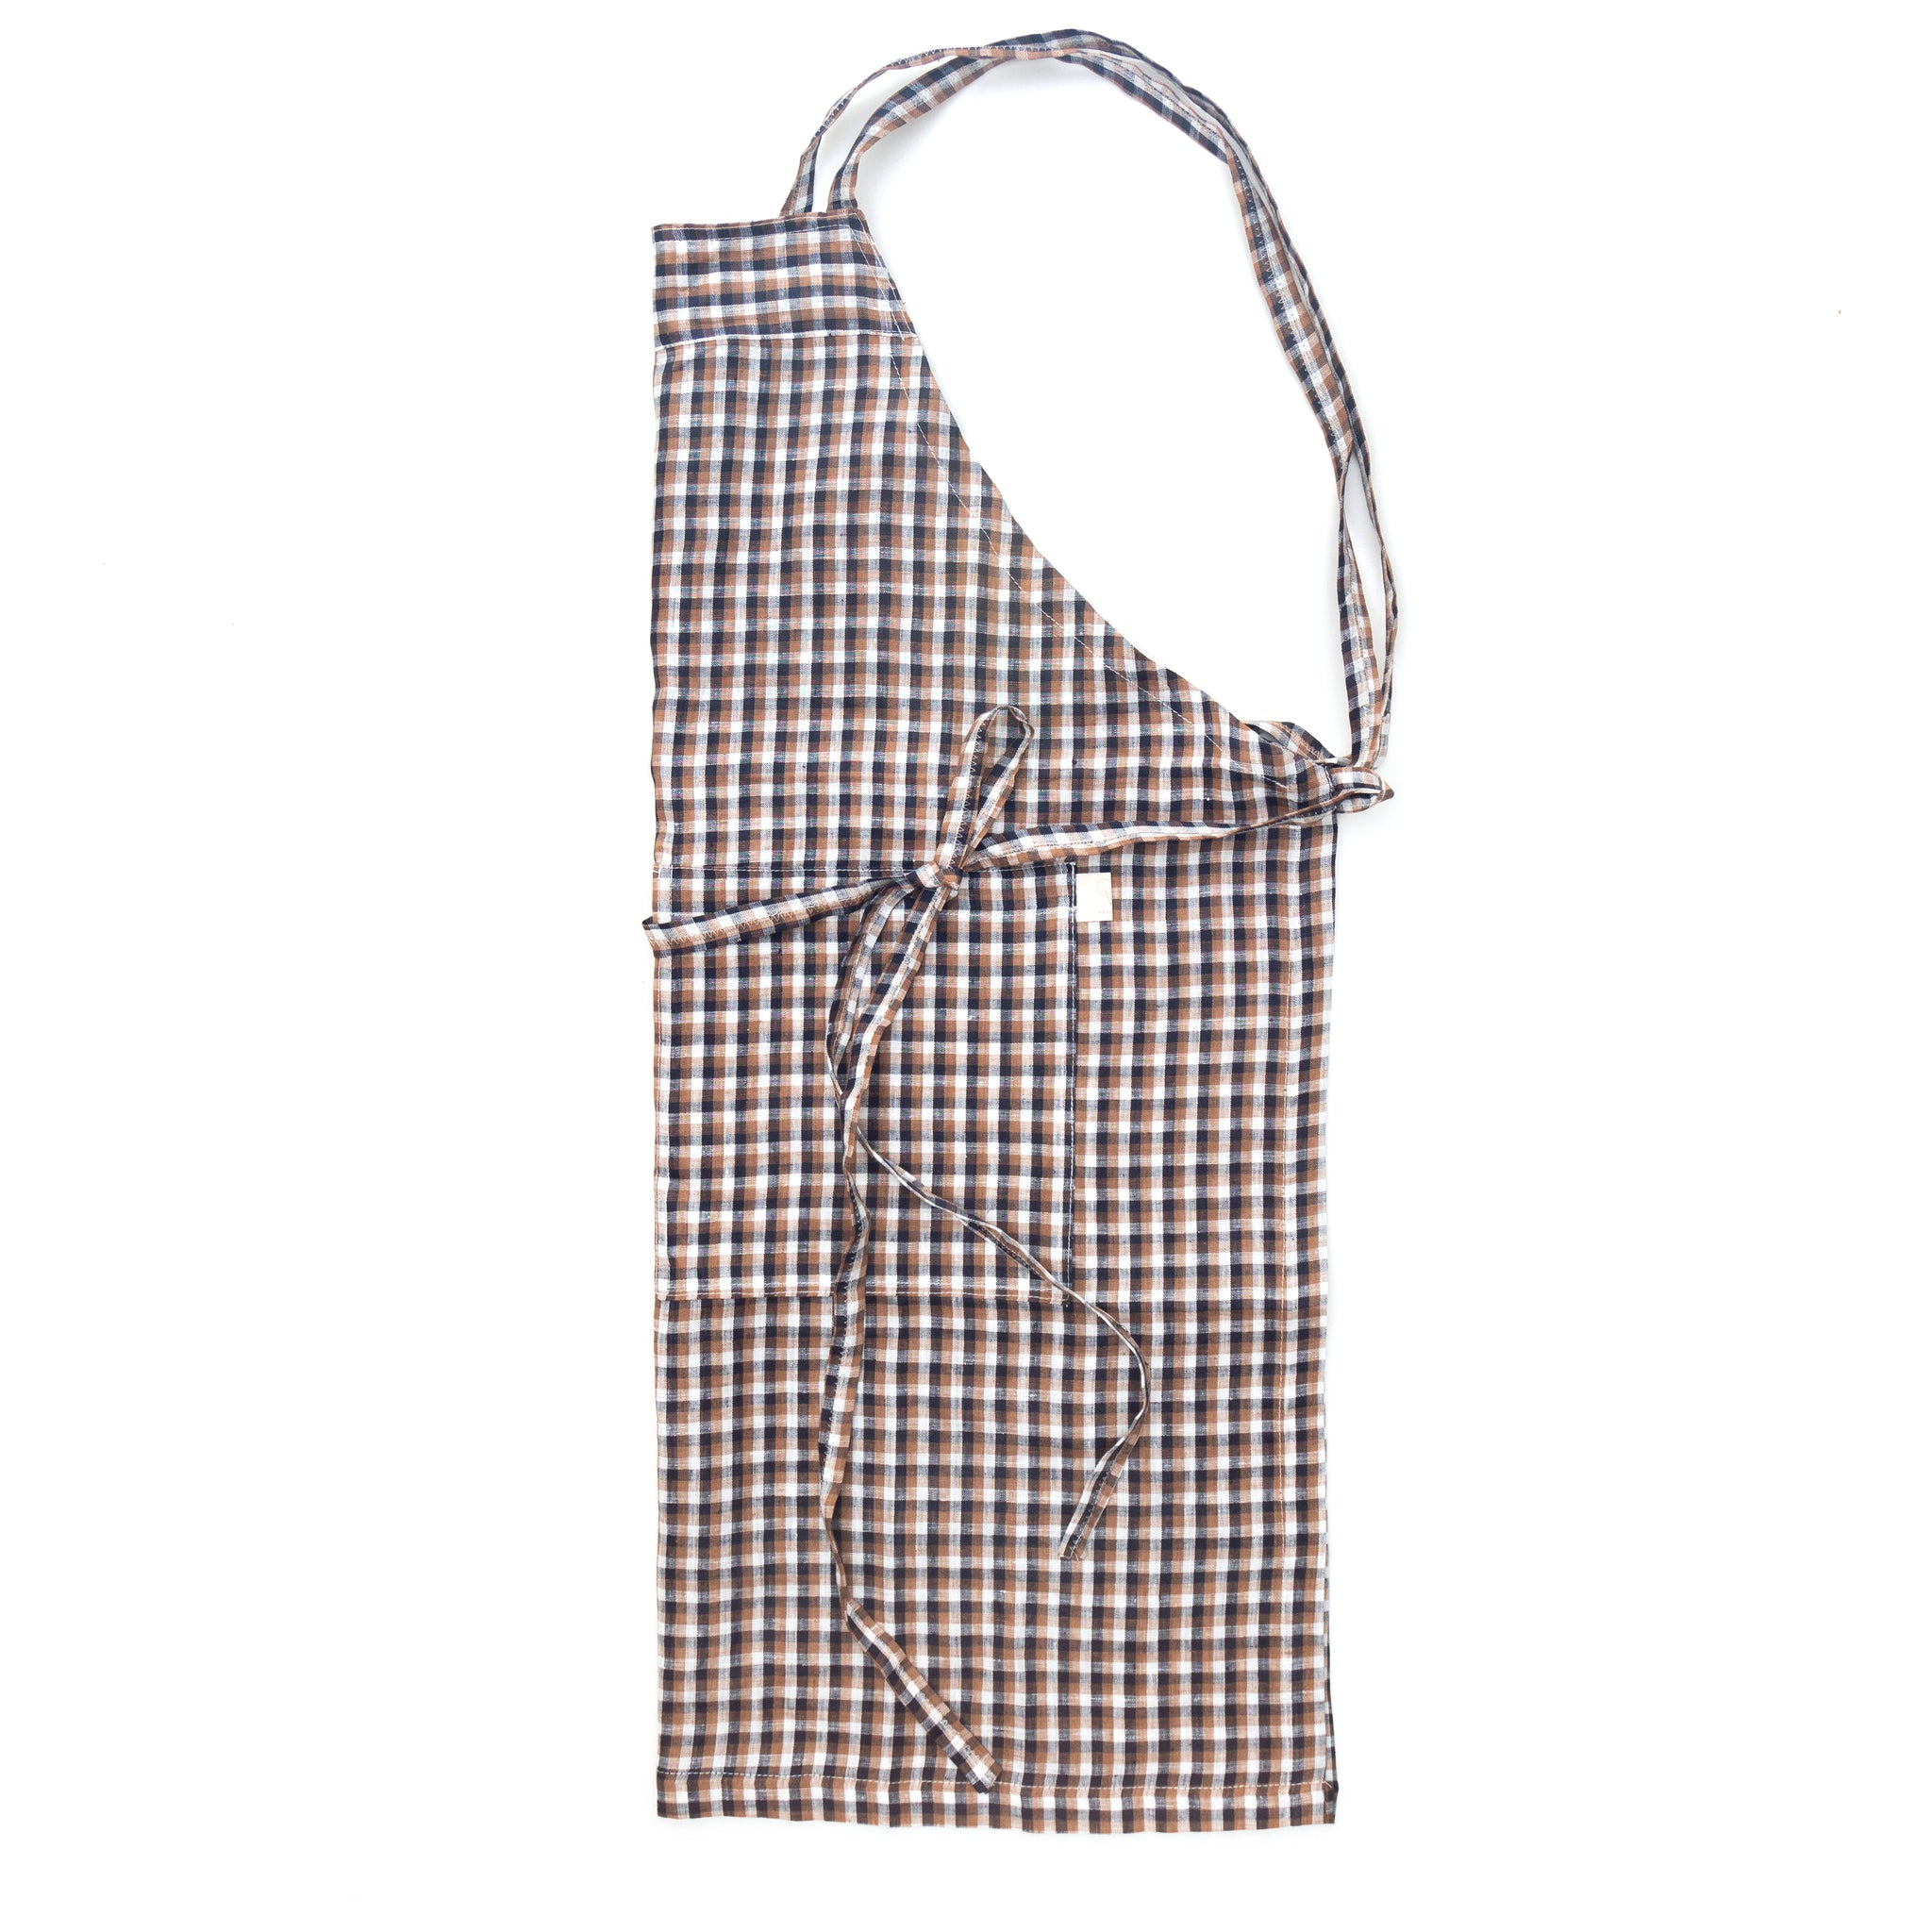 Women's Lightweight Check Cotton Apron